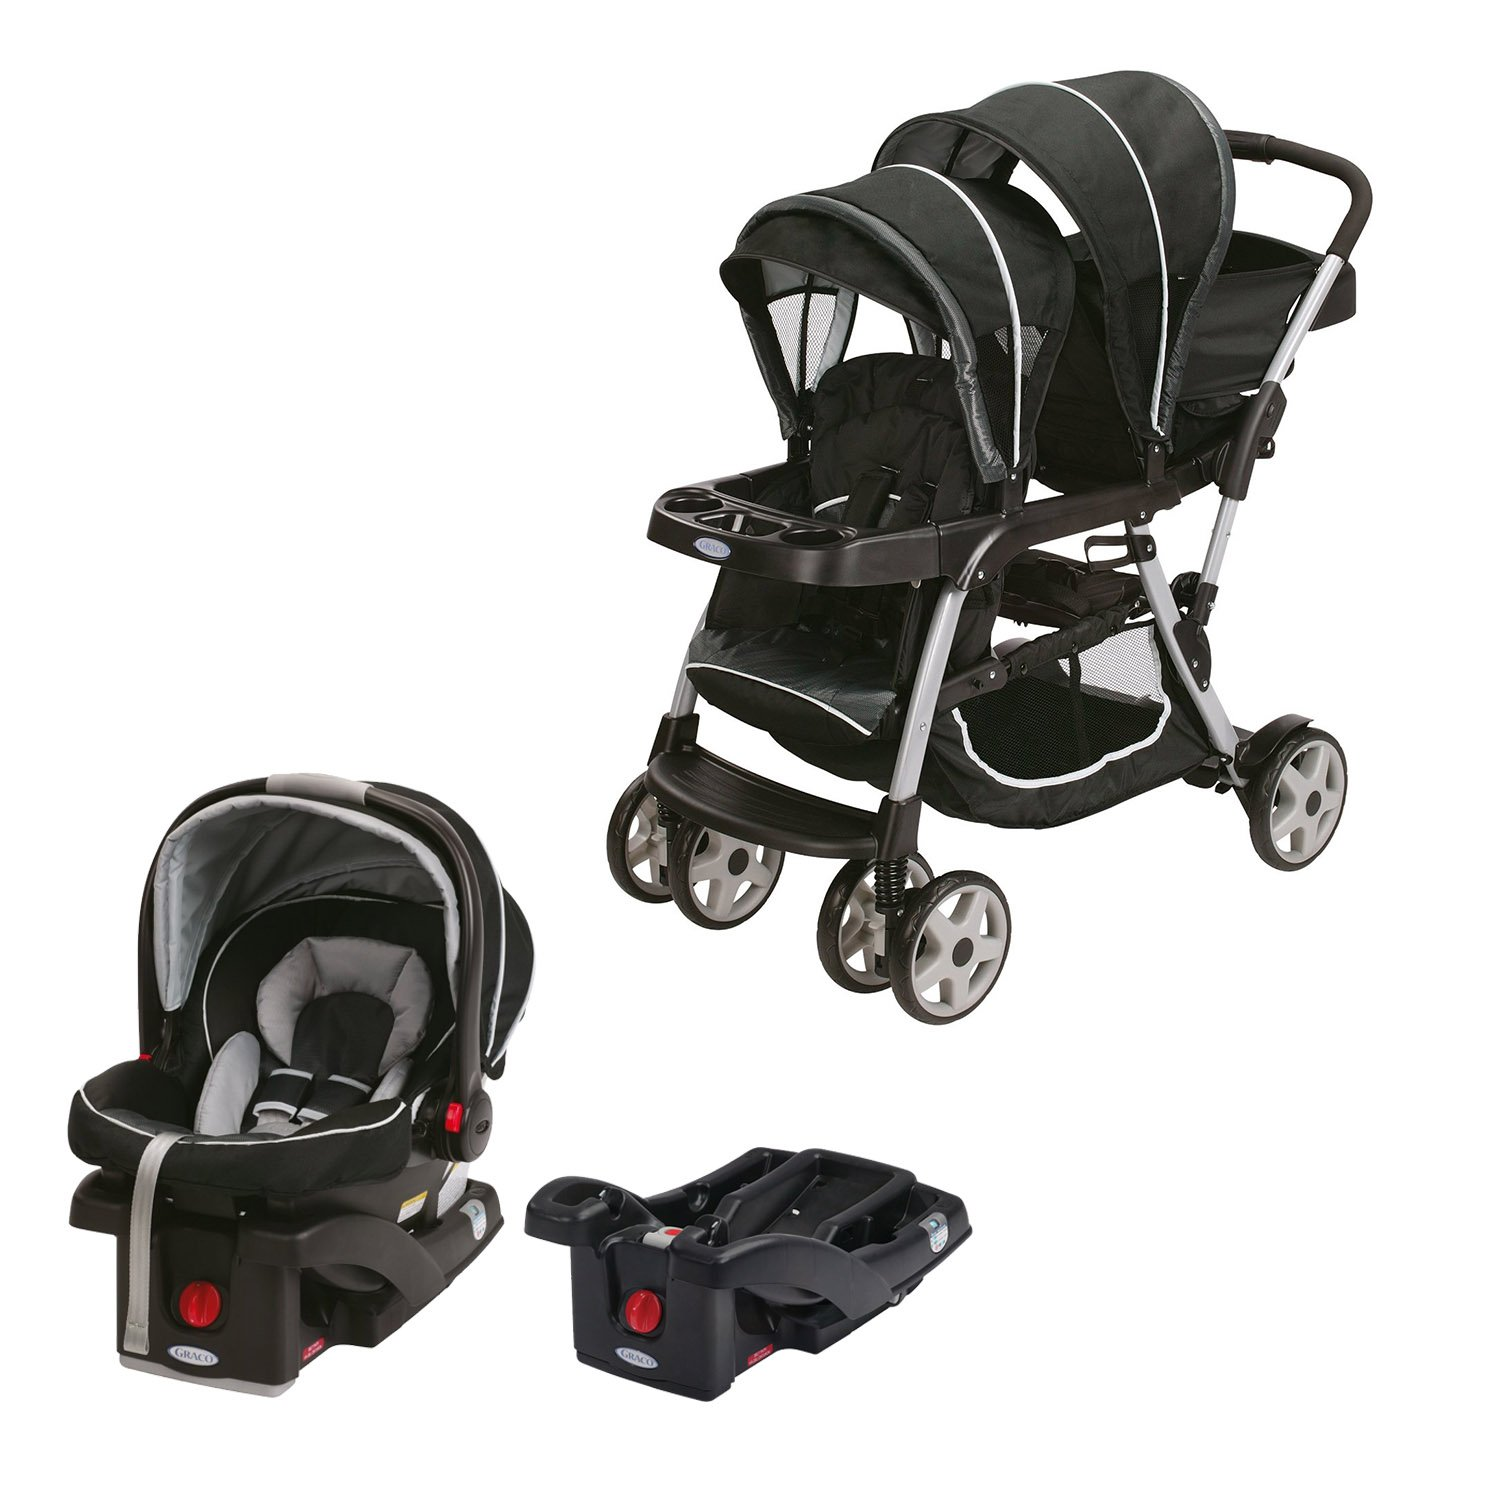 Graco Double Baby Stroller Snugride Car Seat Car Seat Base Travel System